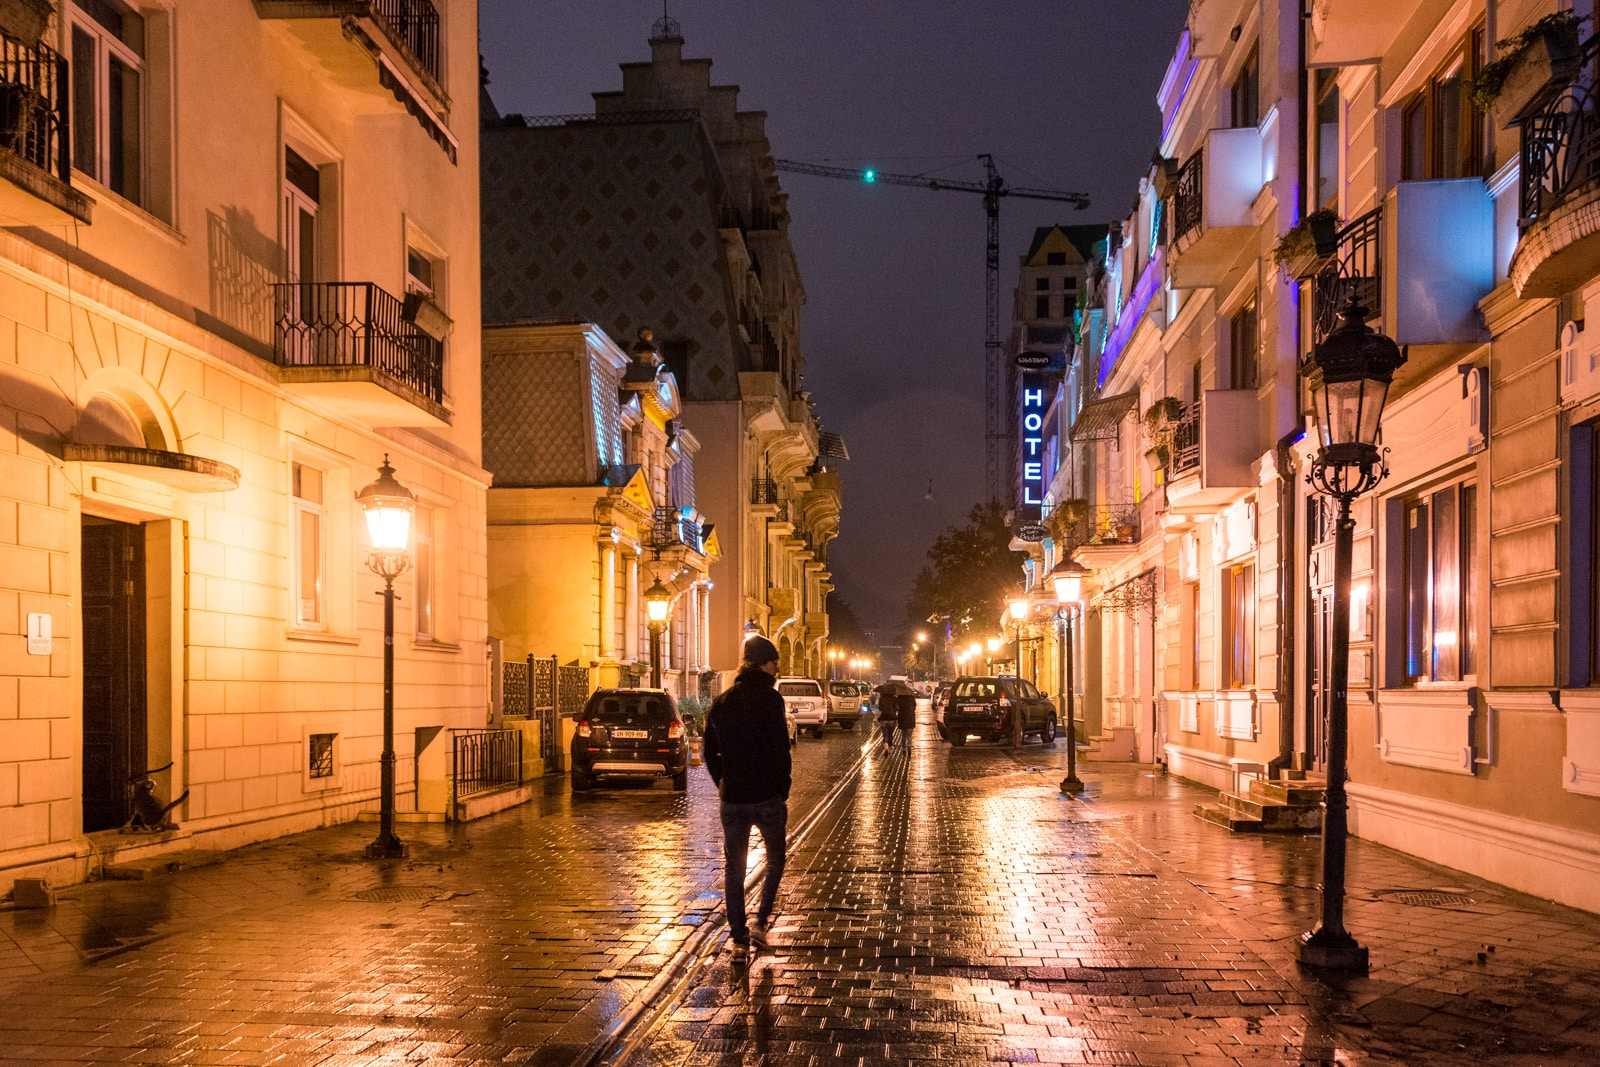 Man walking on the street at night in Batumi, Georgia